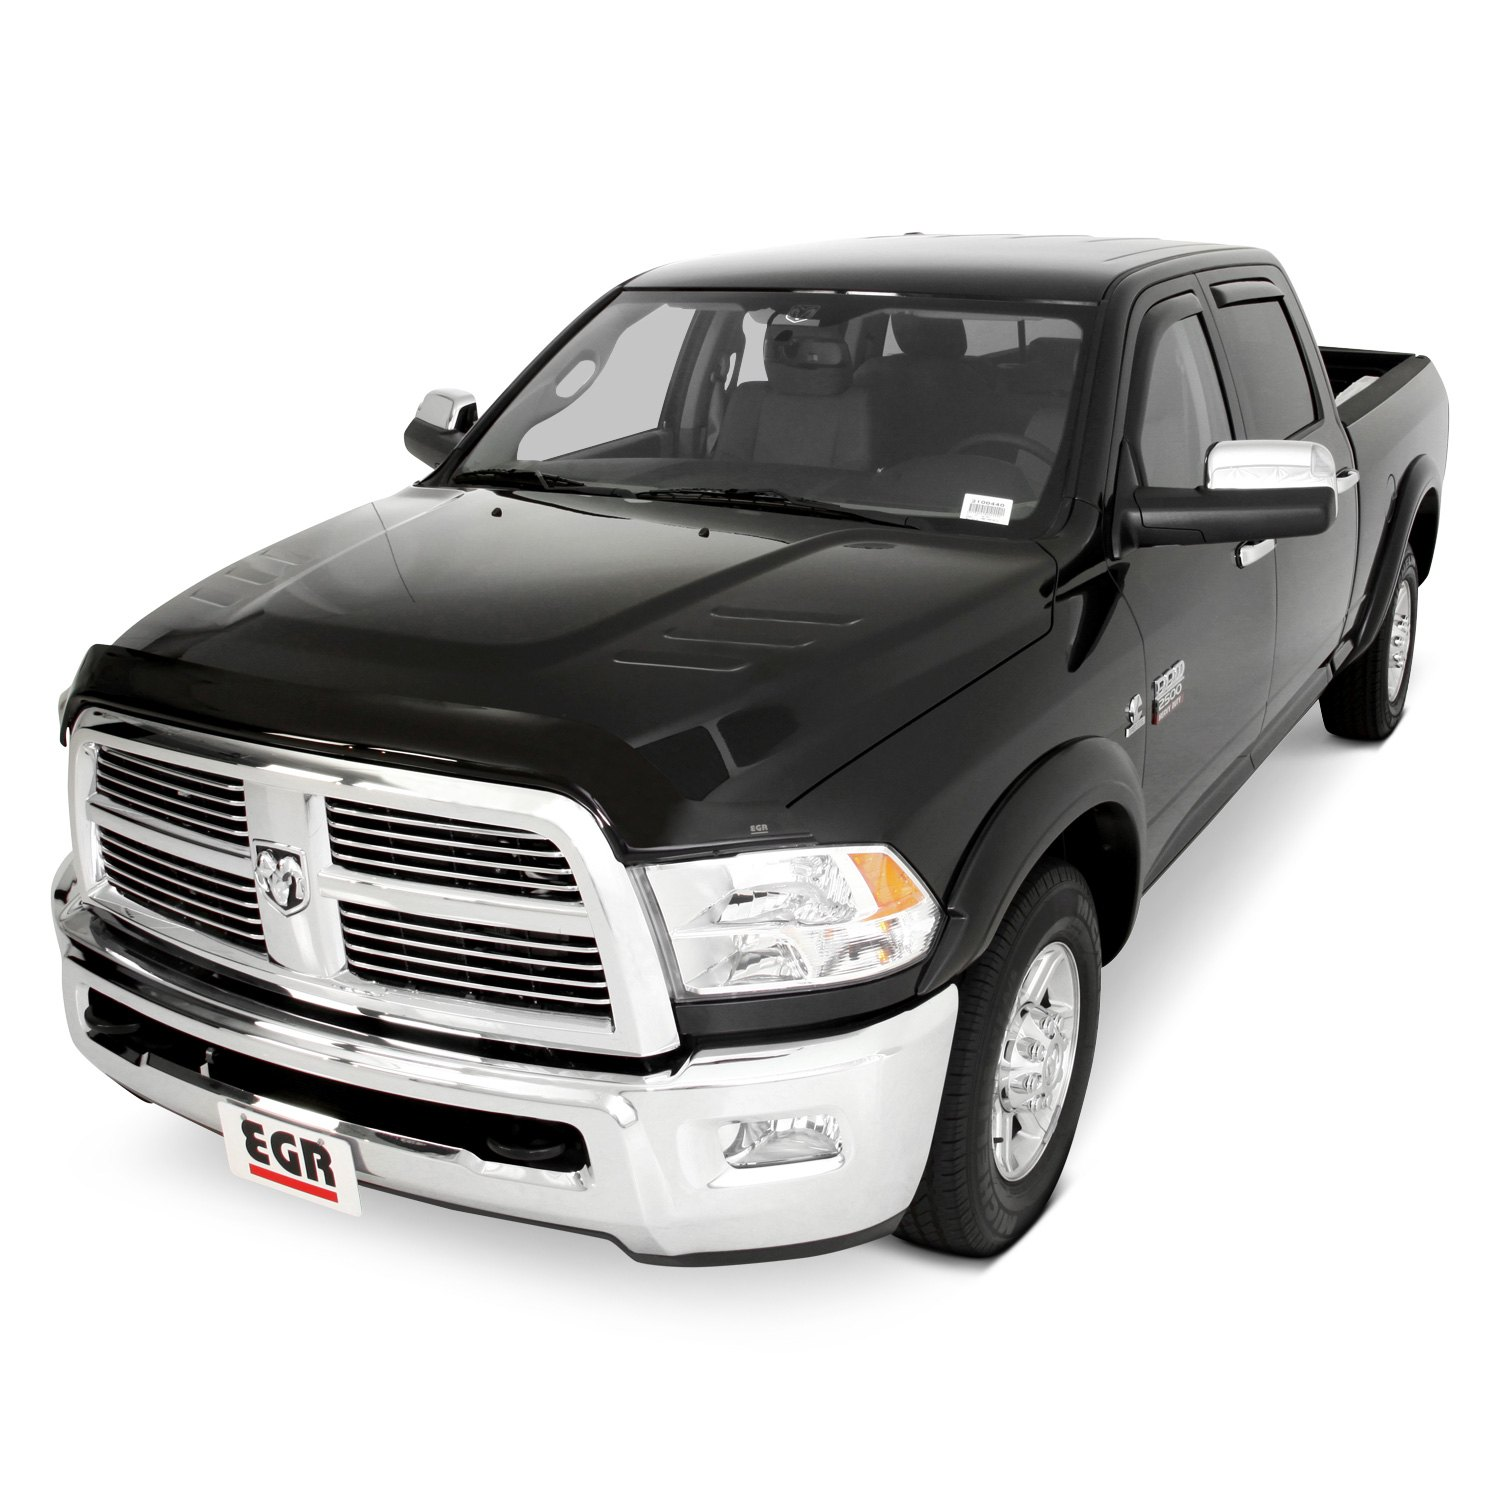 egr dodge ram 2010 2017 oe black fender flares. Cars Review. Best American Auto & Cars Review